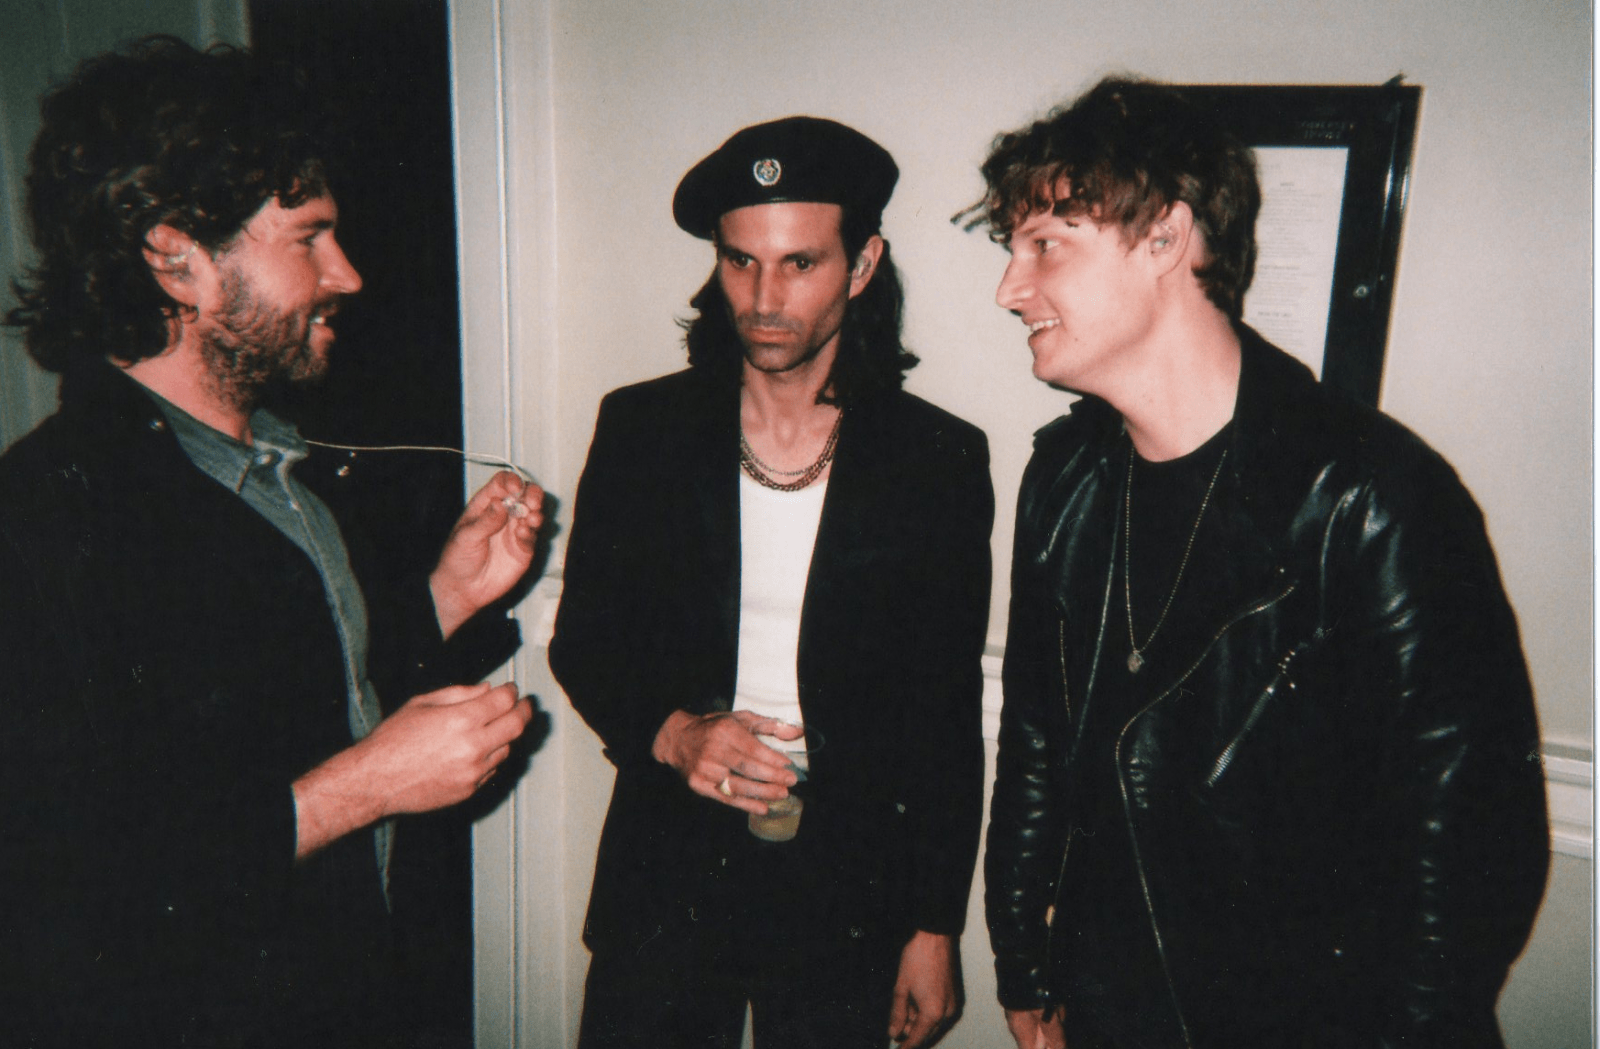 Meet Foster the People